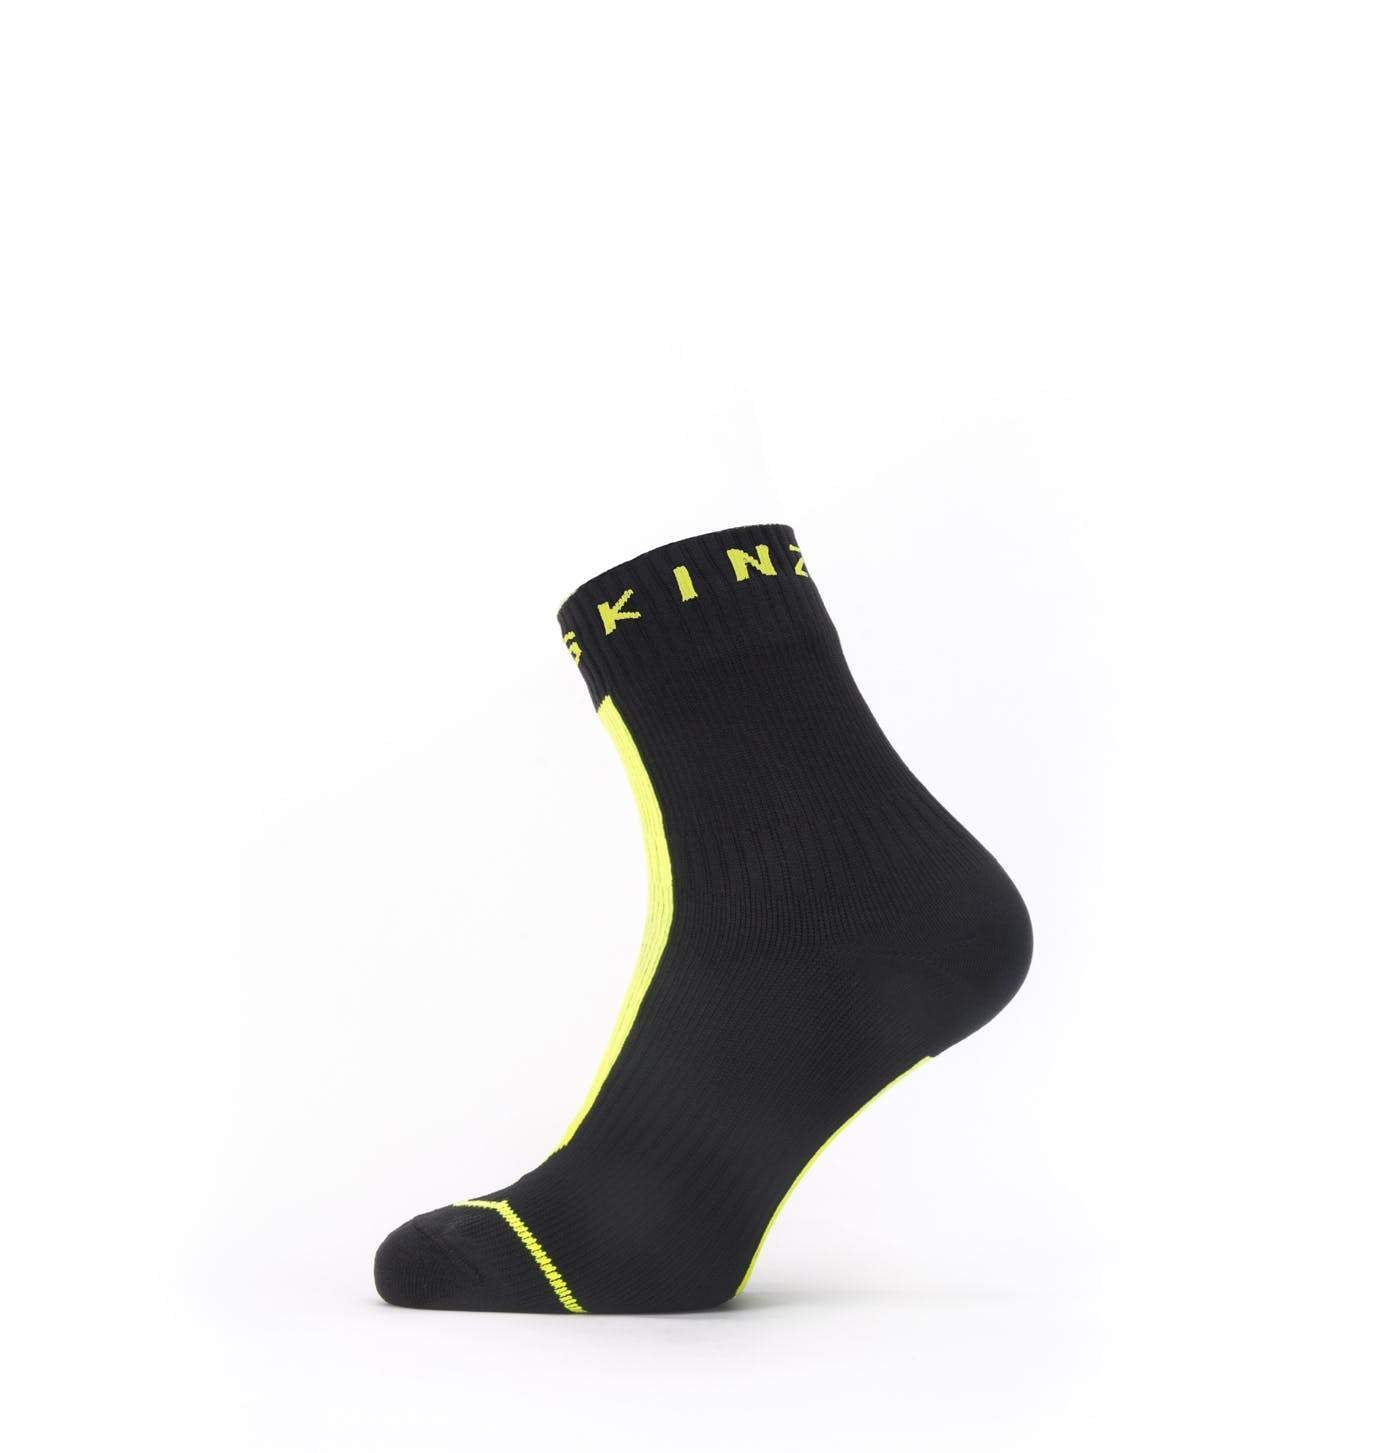 waterproof-all-weather-ankle-length-sock-with-hydrostop